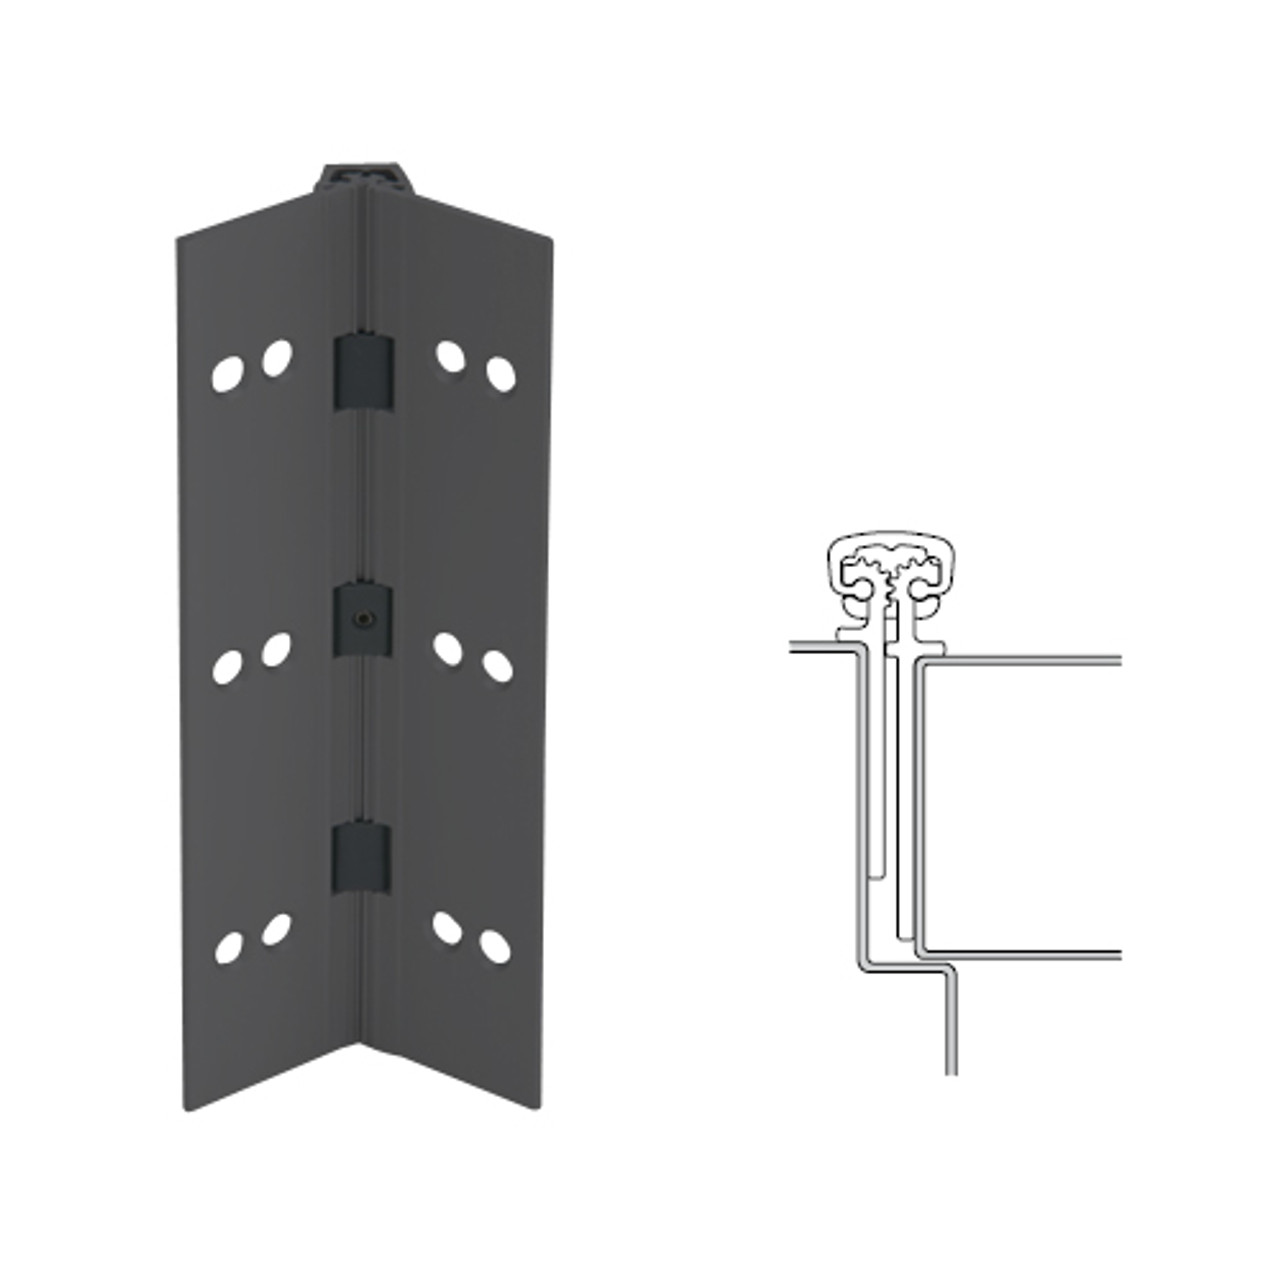 026XY-315AN-95-SECHM IVES Full Mortise Continuous Geared Hinges with Security Screws - Hex Pin Drive in Anodized Black